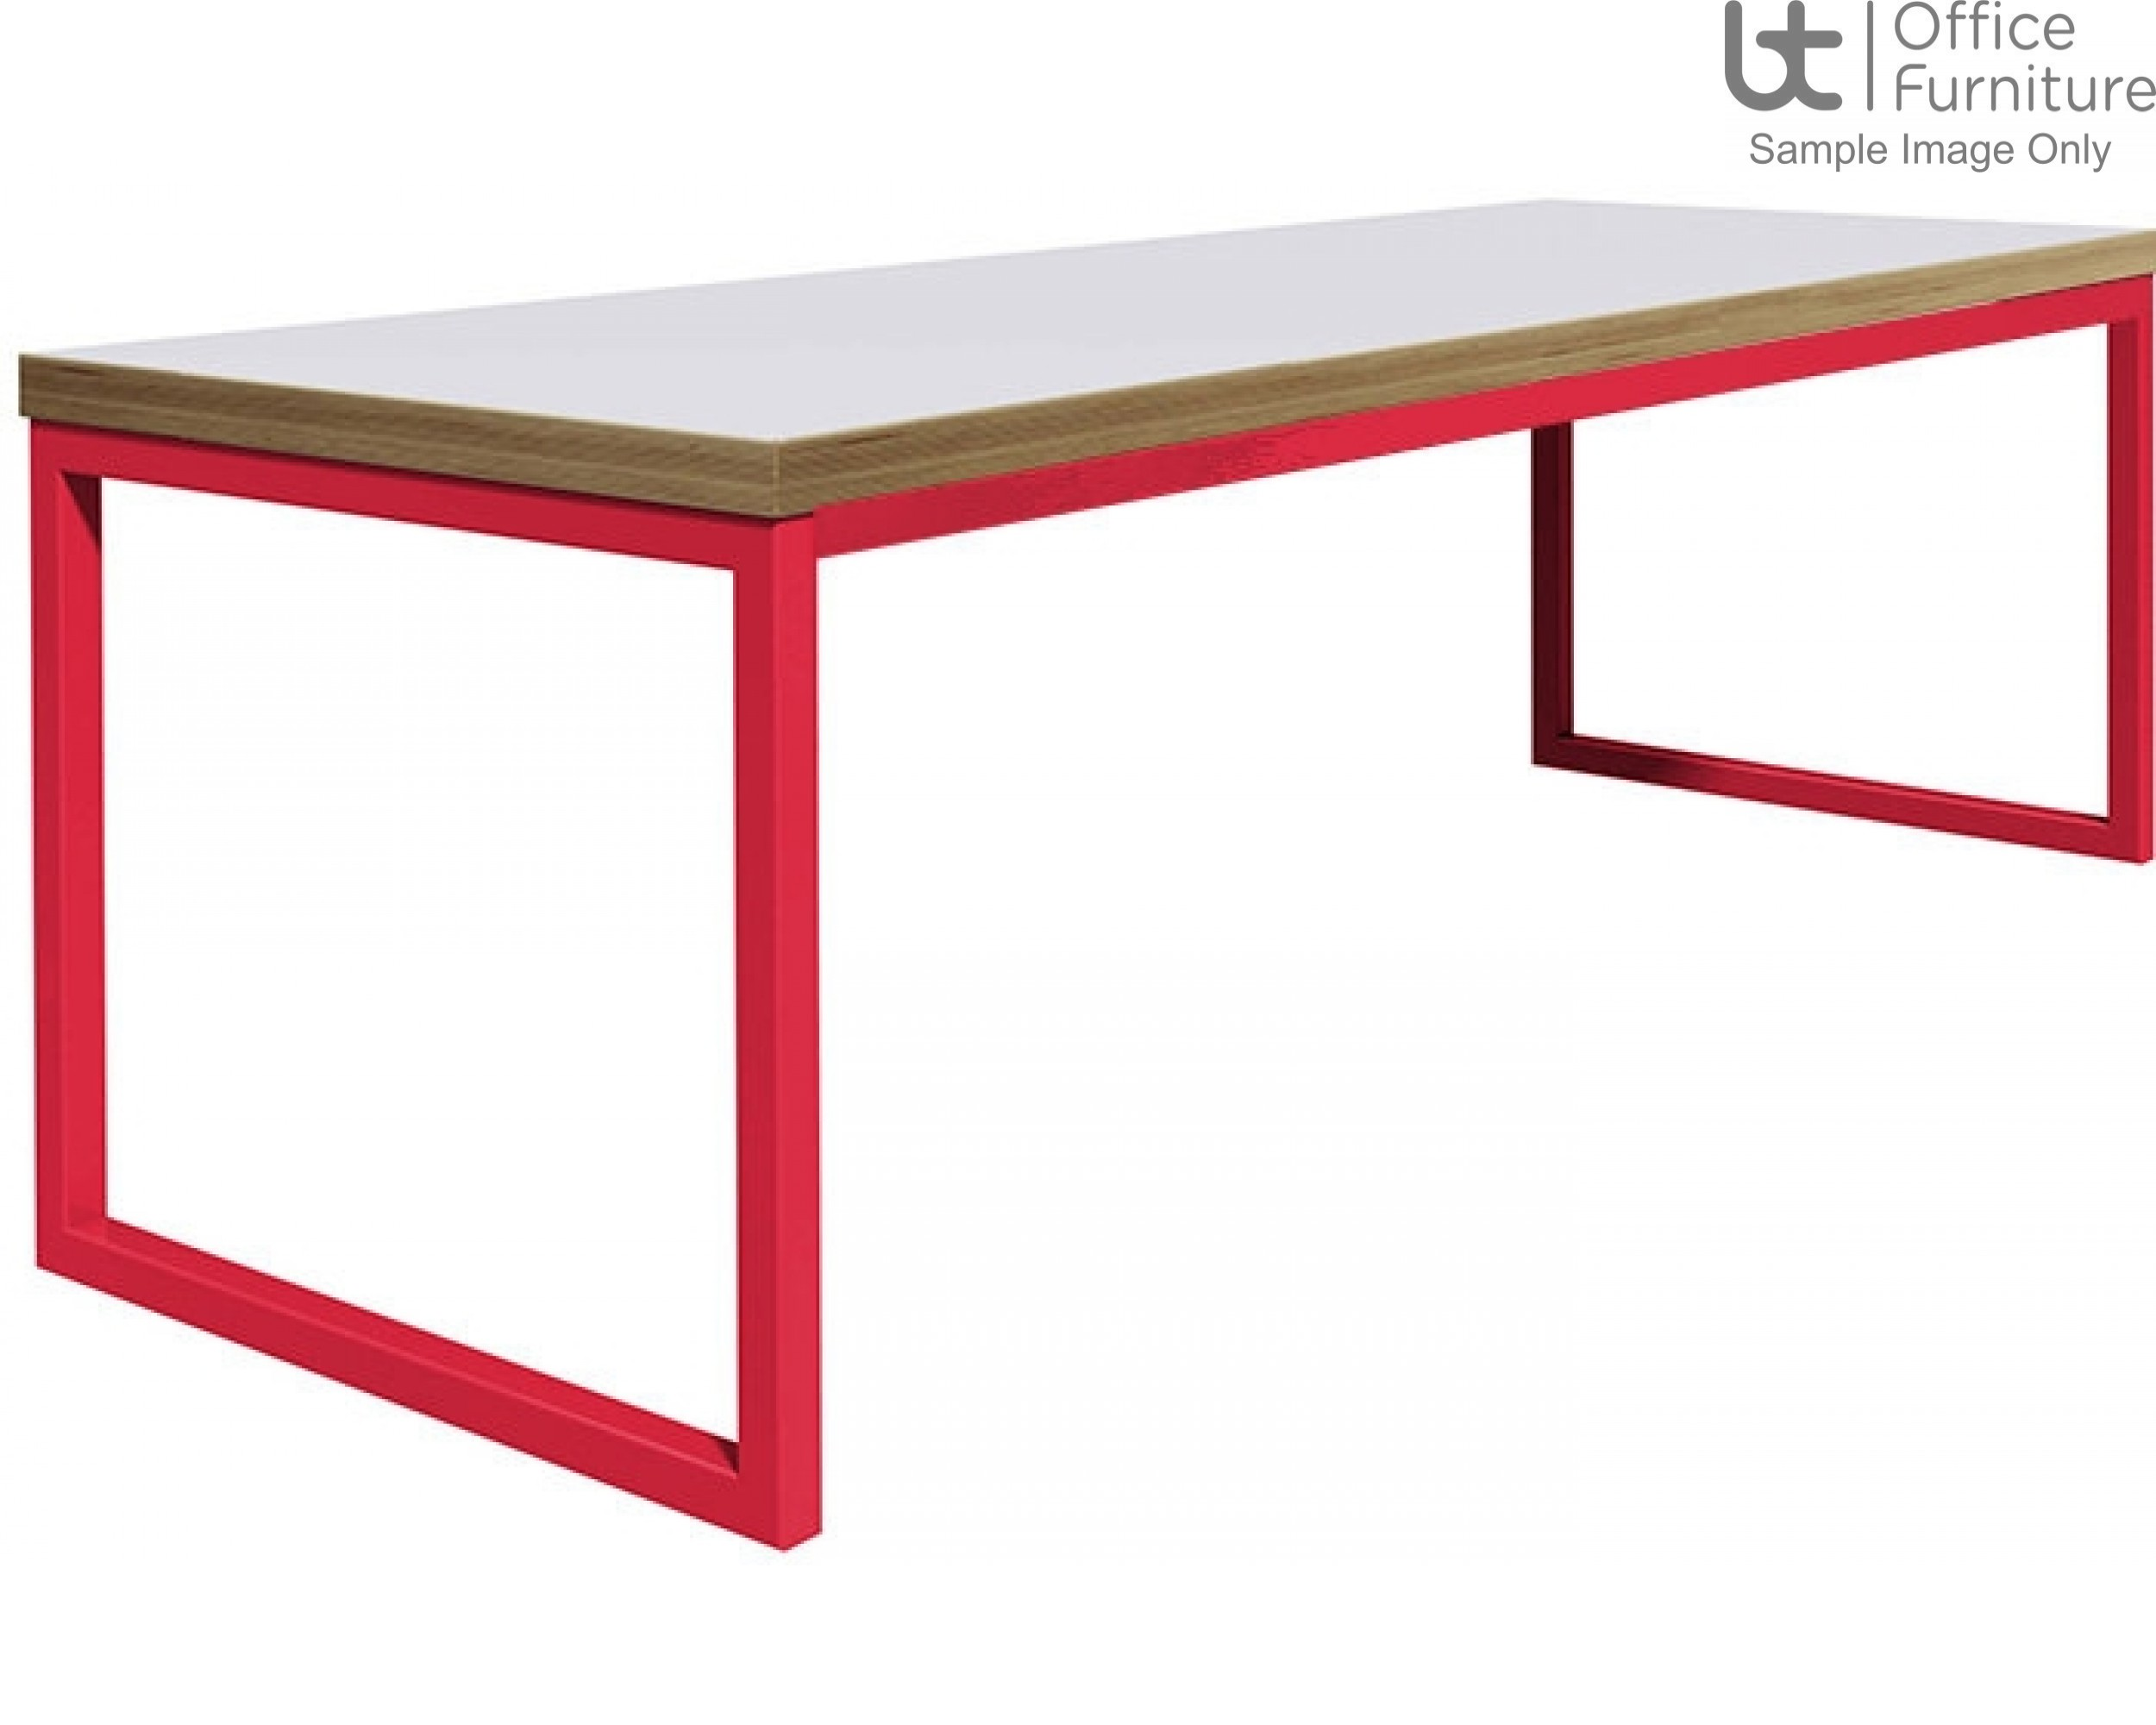 Urban 40/40 Robust 25mm Laminate Top School Bench Dining Table W2200mm (Premium Frame Colours)